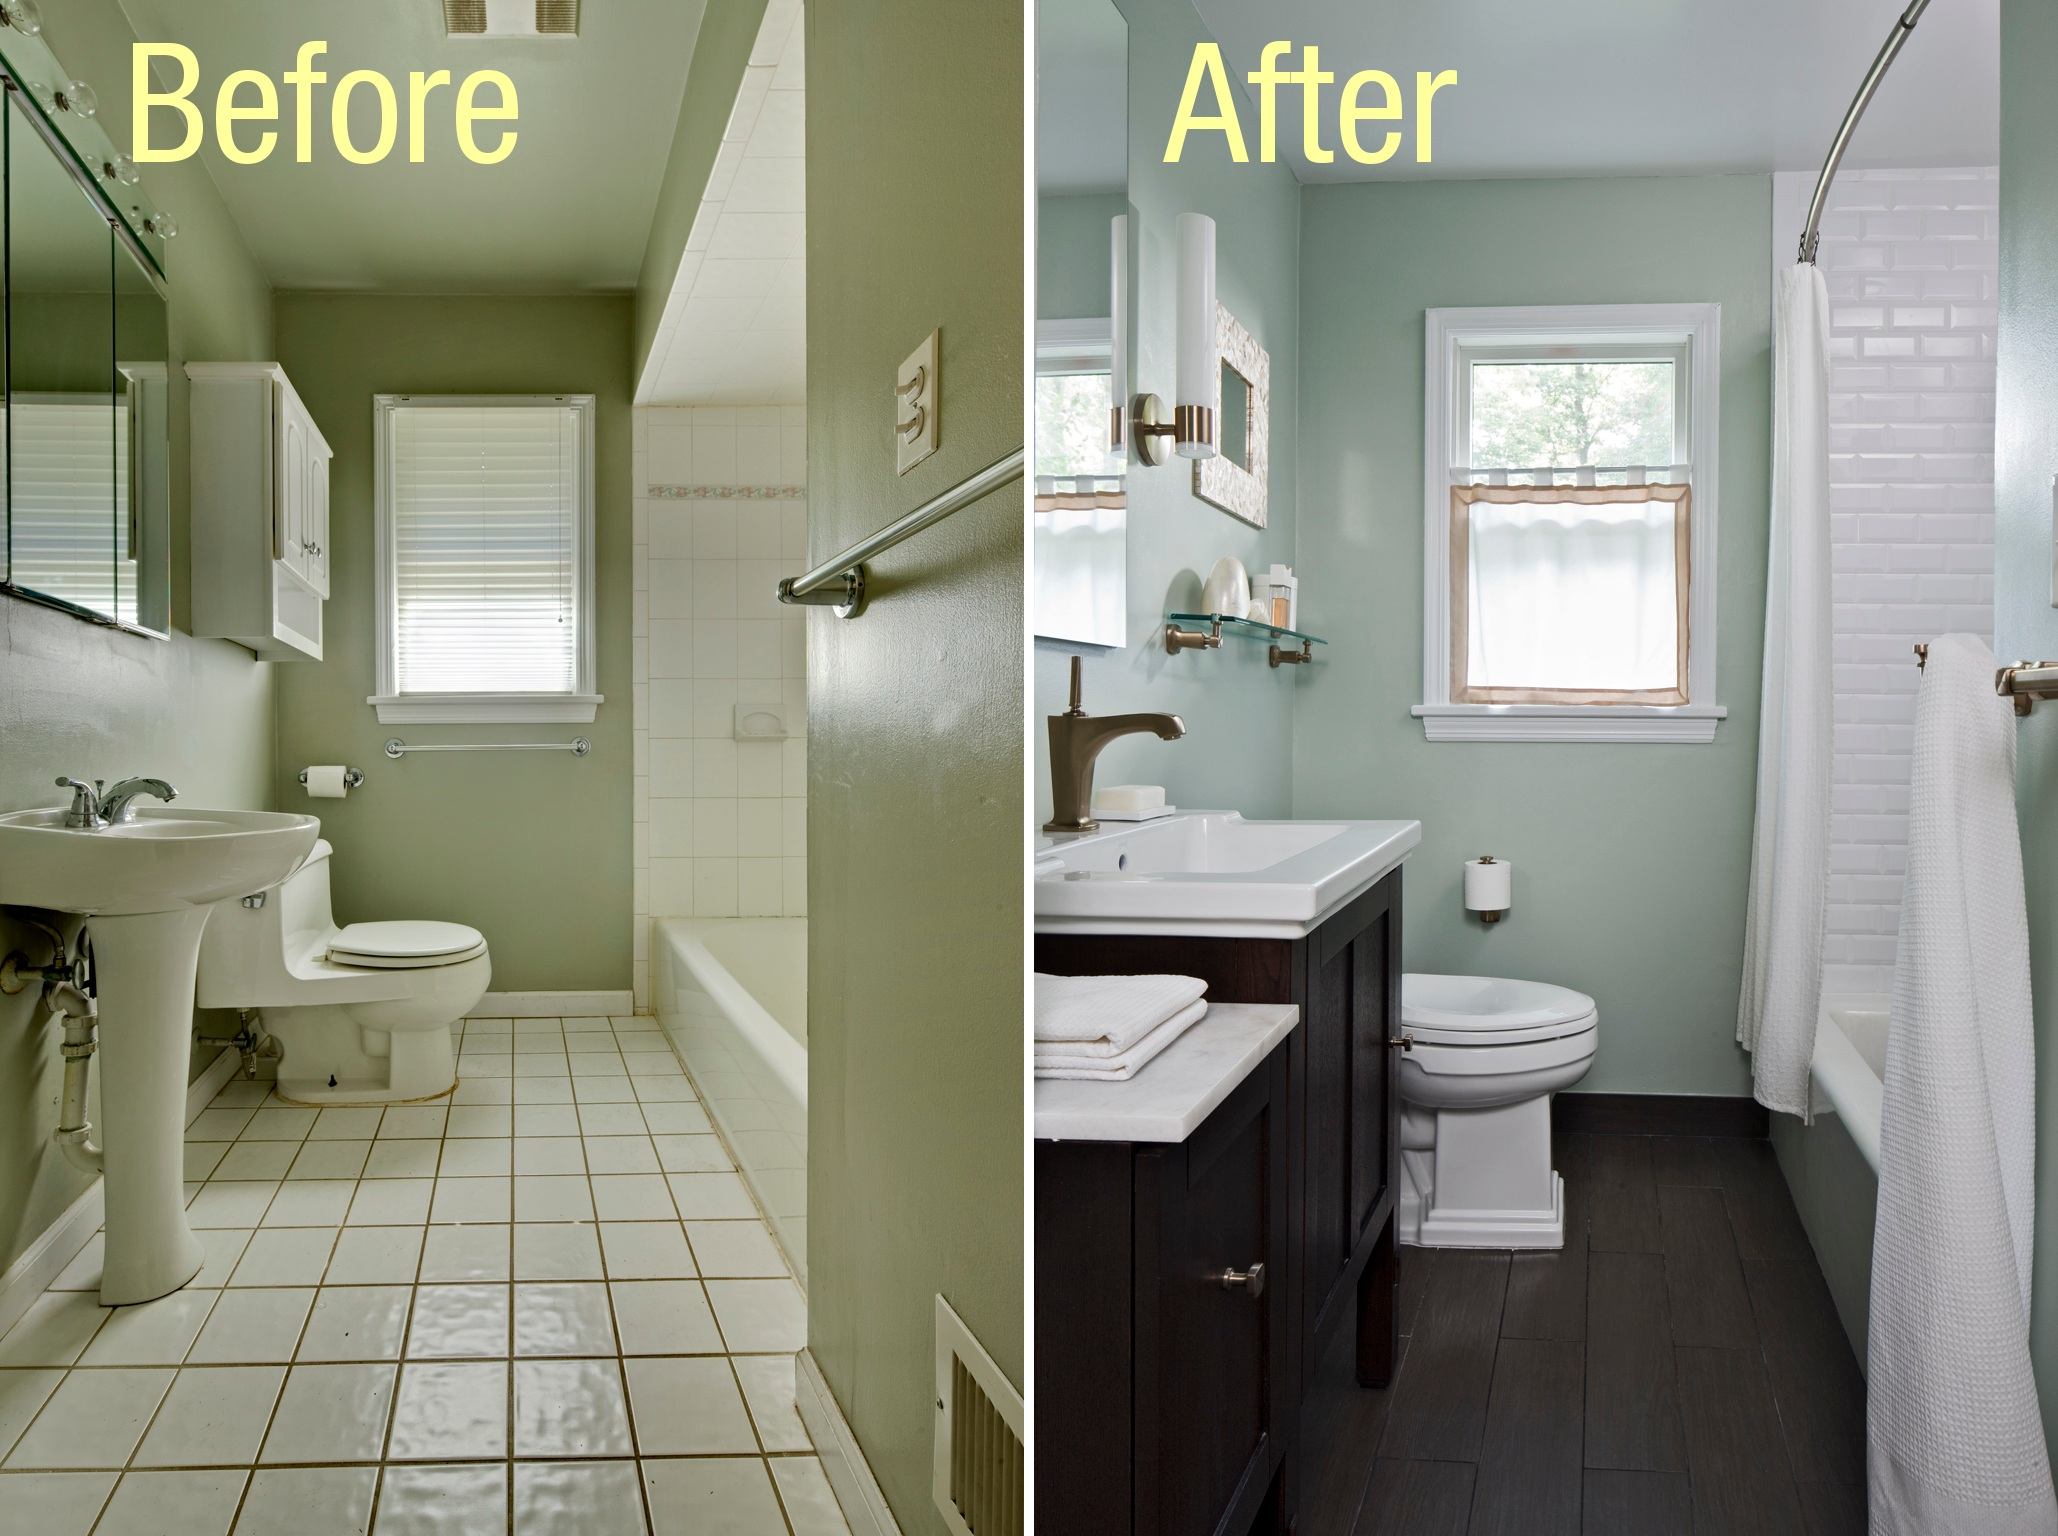 Bathroom Remodel Wichita Ks handyman wichita ks | handyman wichita ks | property management